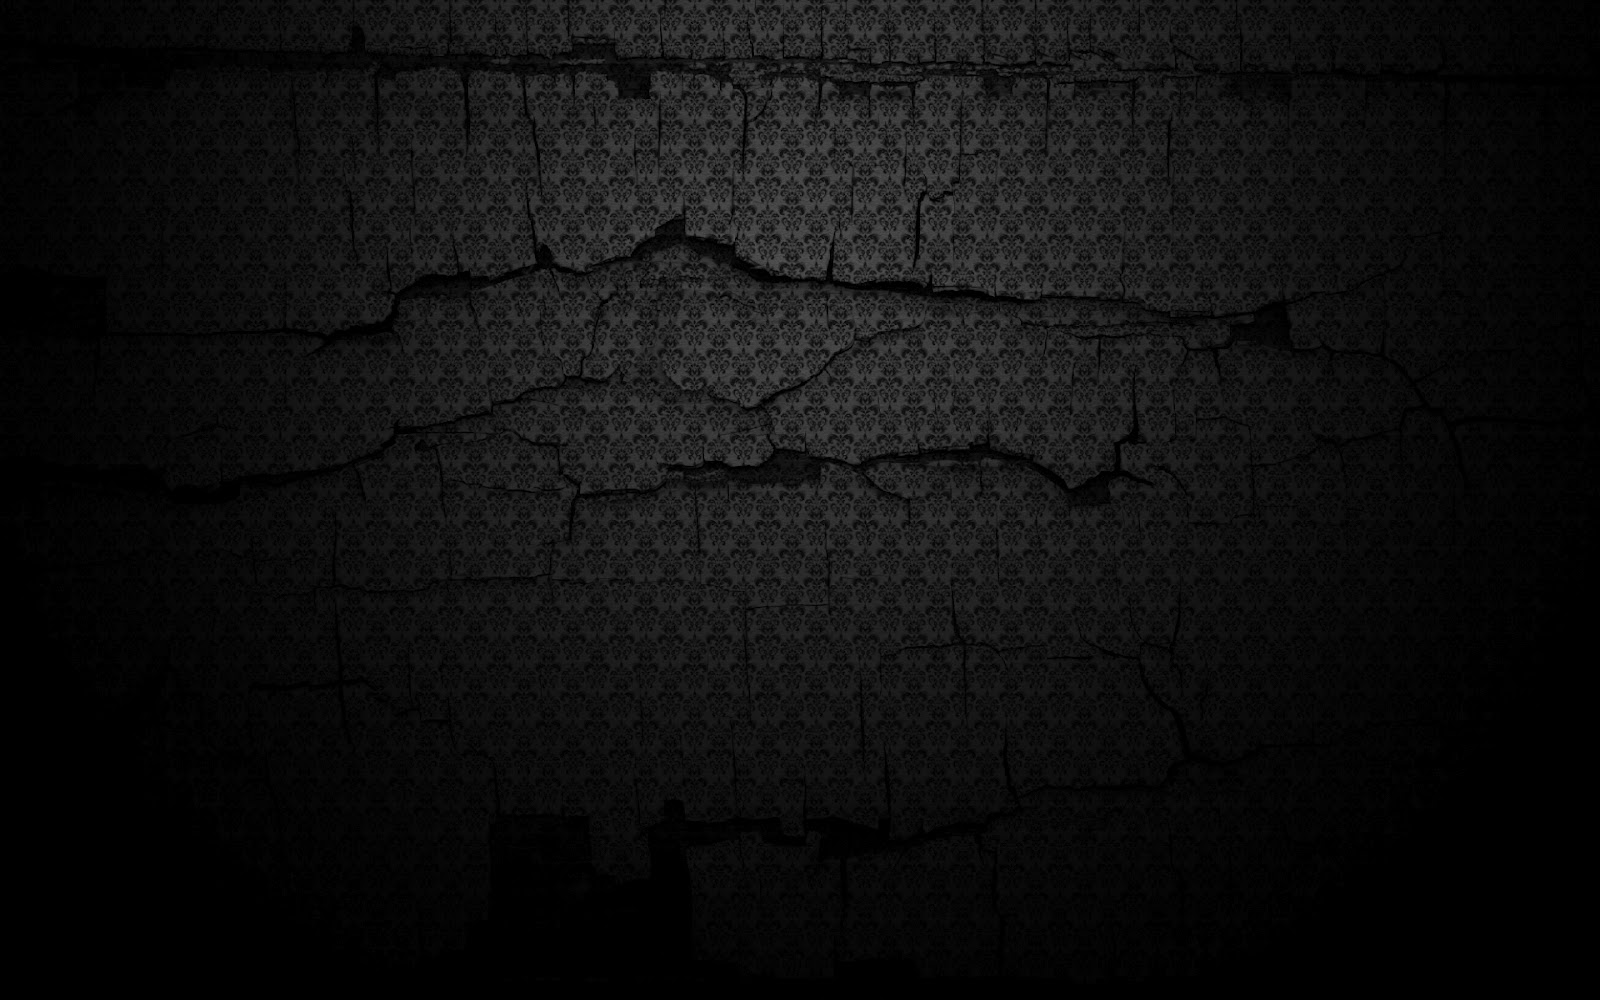 Dark Patterns HD Wallpapers  HD Wallpapers ,Backgrounds ,Photos ,Pictures, Image ,PC